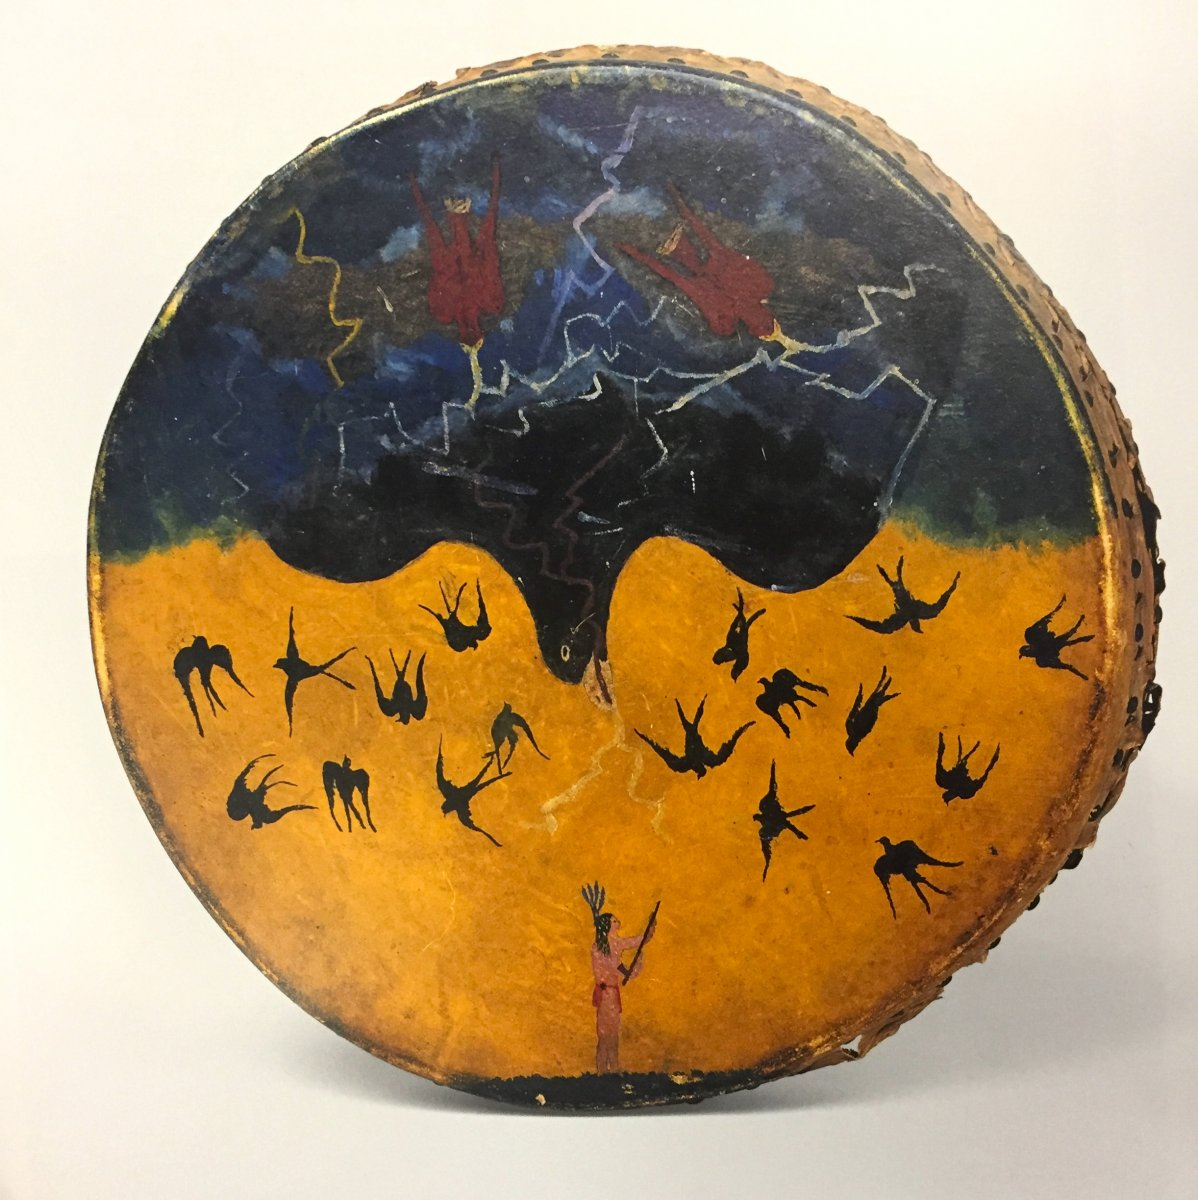 Double-sided drum (1890) by Chaticks-si-Chaticks (Pawnee) artist, Rawhide, wood, iron and pigment, Fenimore Art Museum, Cooperstown, New York. Taken from: Penney, David W. Native American Art Masterpieces. Hugh Lauter Levin Associates, 1997.